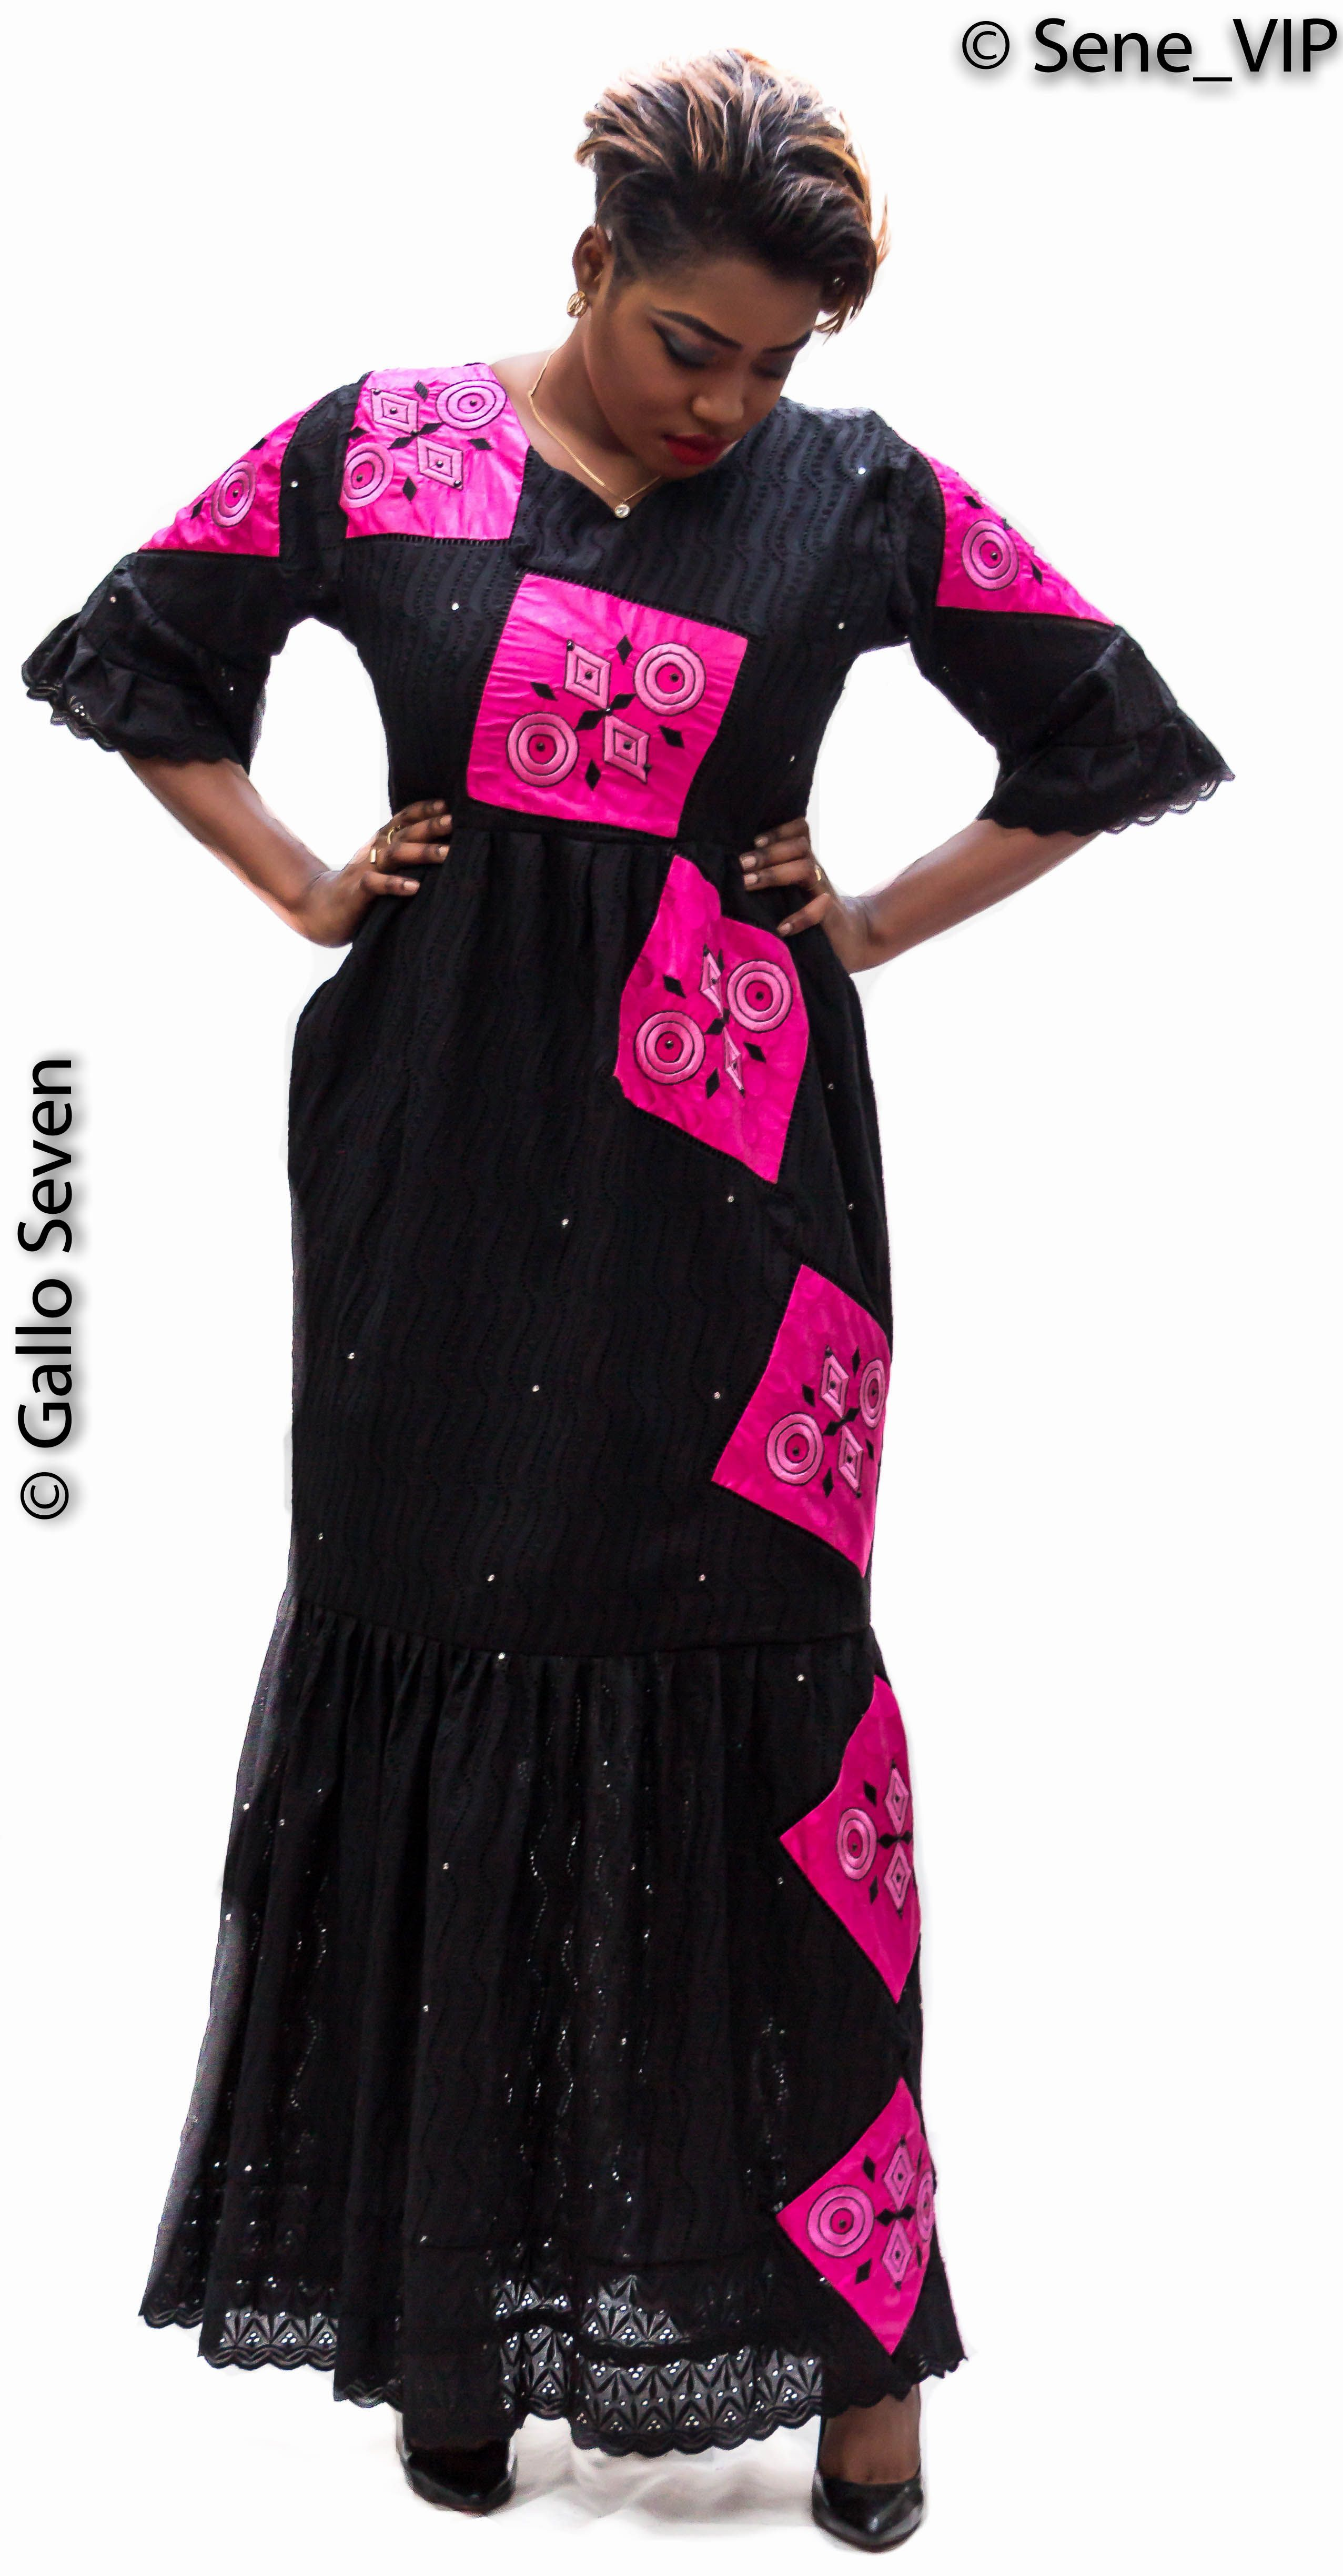 robe fashion s n galaise la mode by gs mode femme pinterest africans african fashion. Black Bedroom Furniture Sets. Home Design Ideas